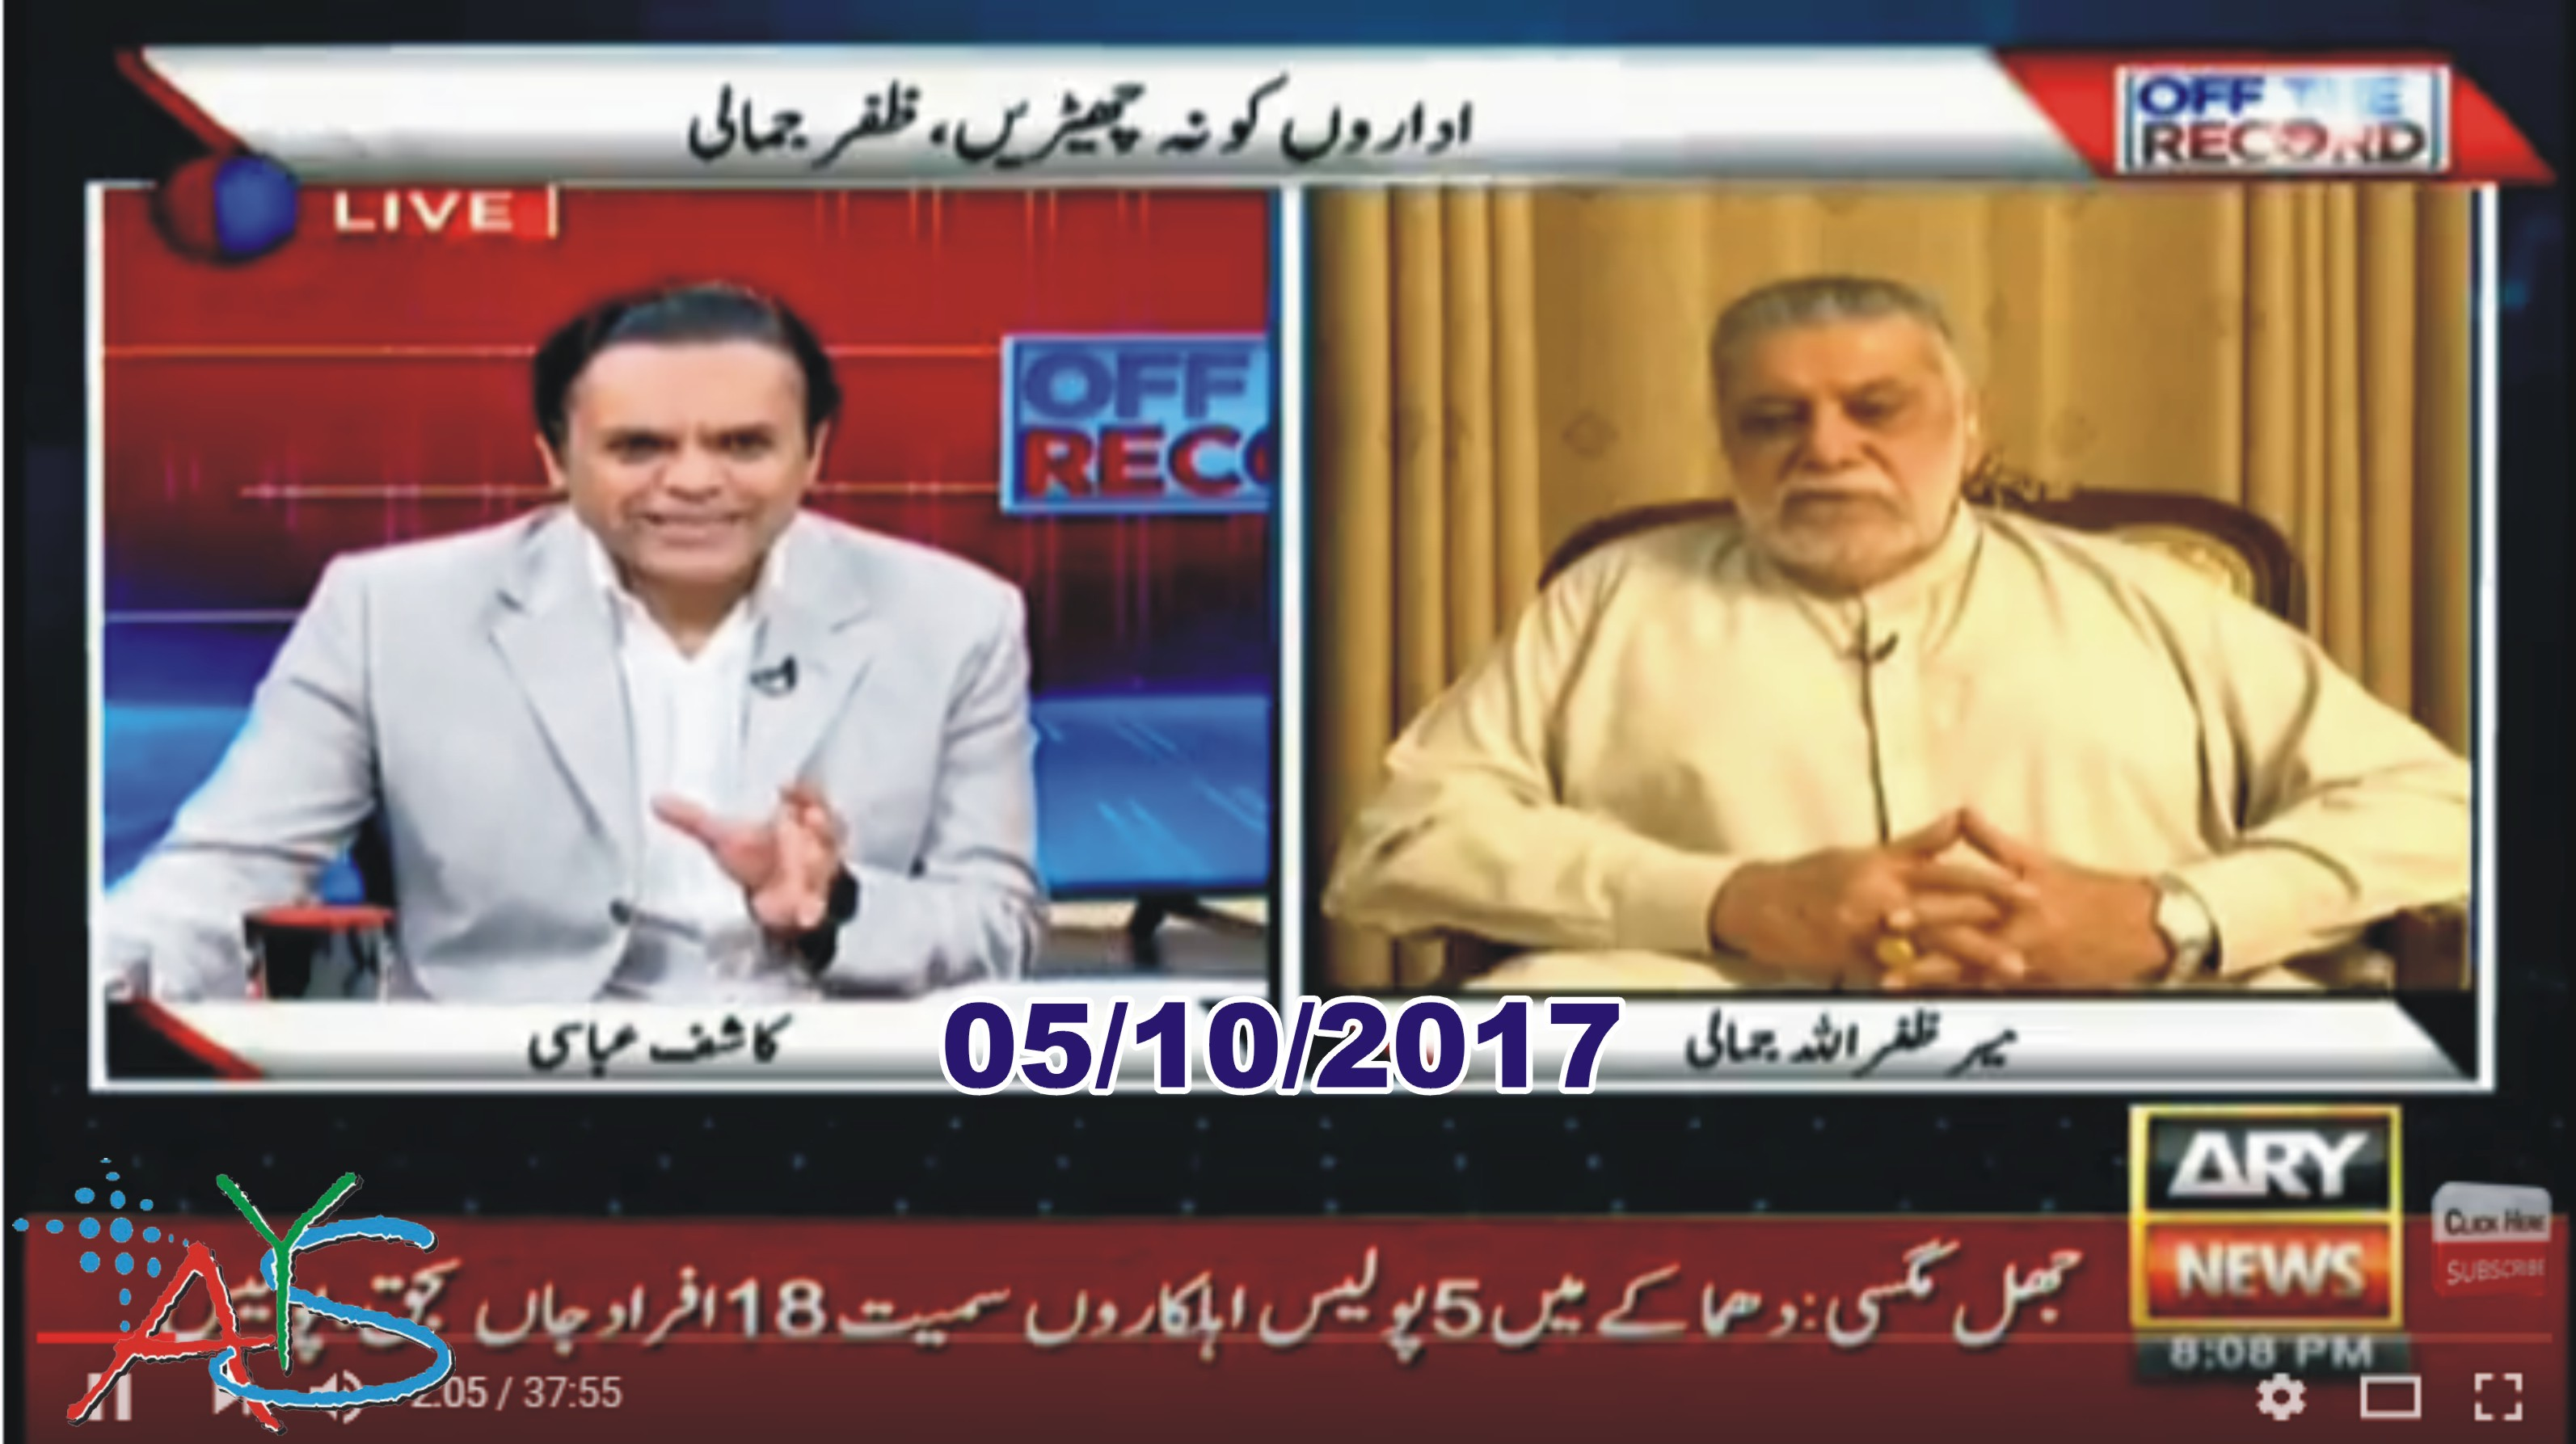 05 Oct 2017 - Election Reform Bill - Khatam Nabowat